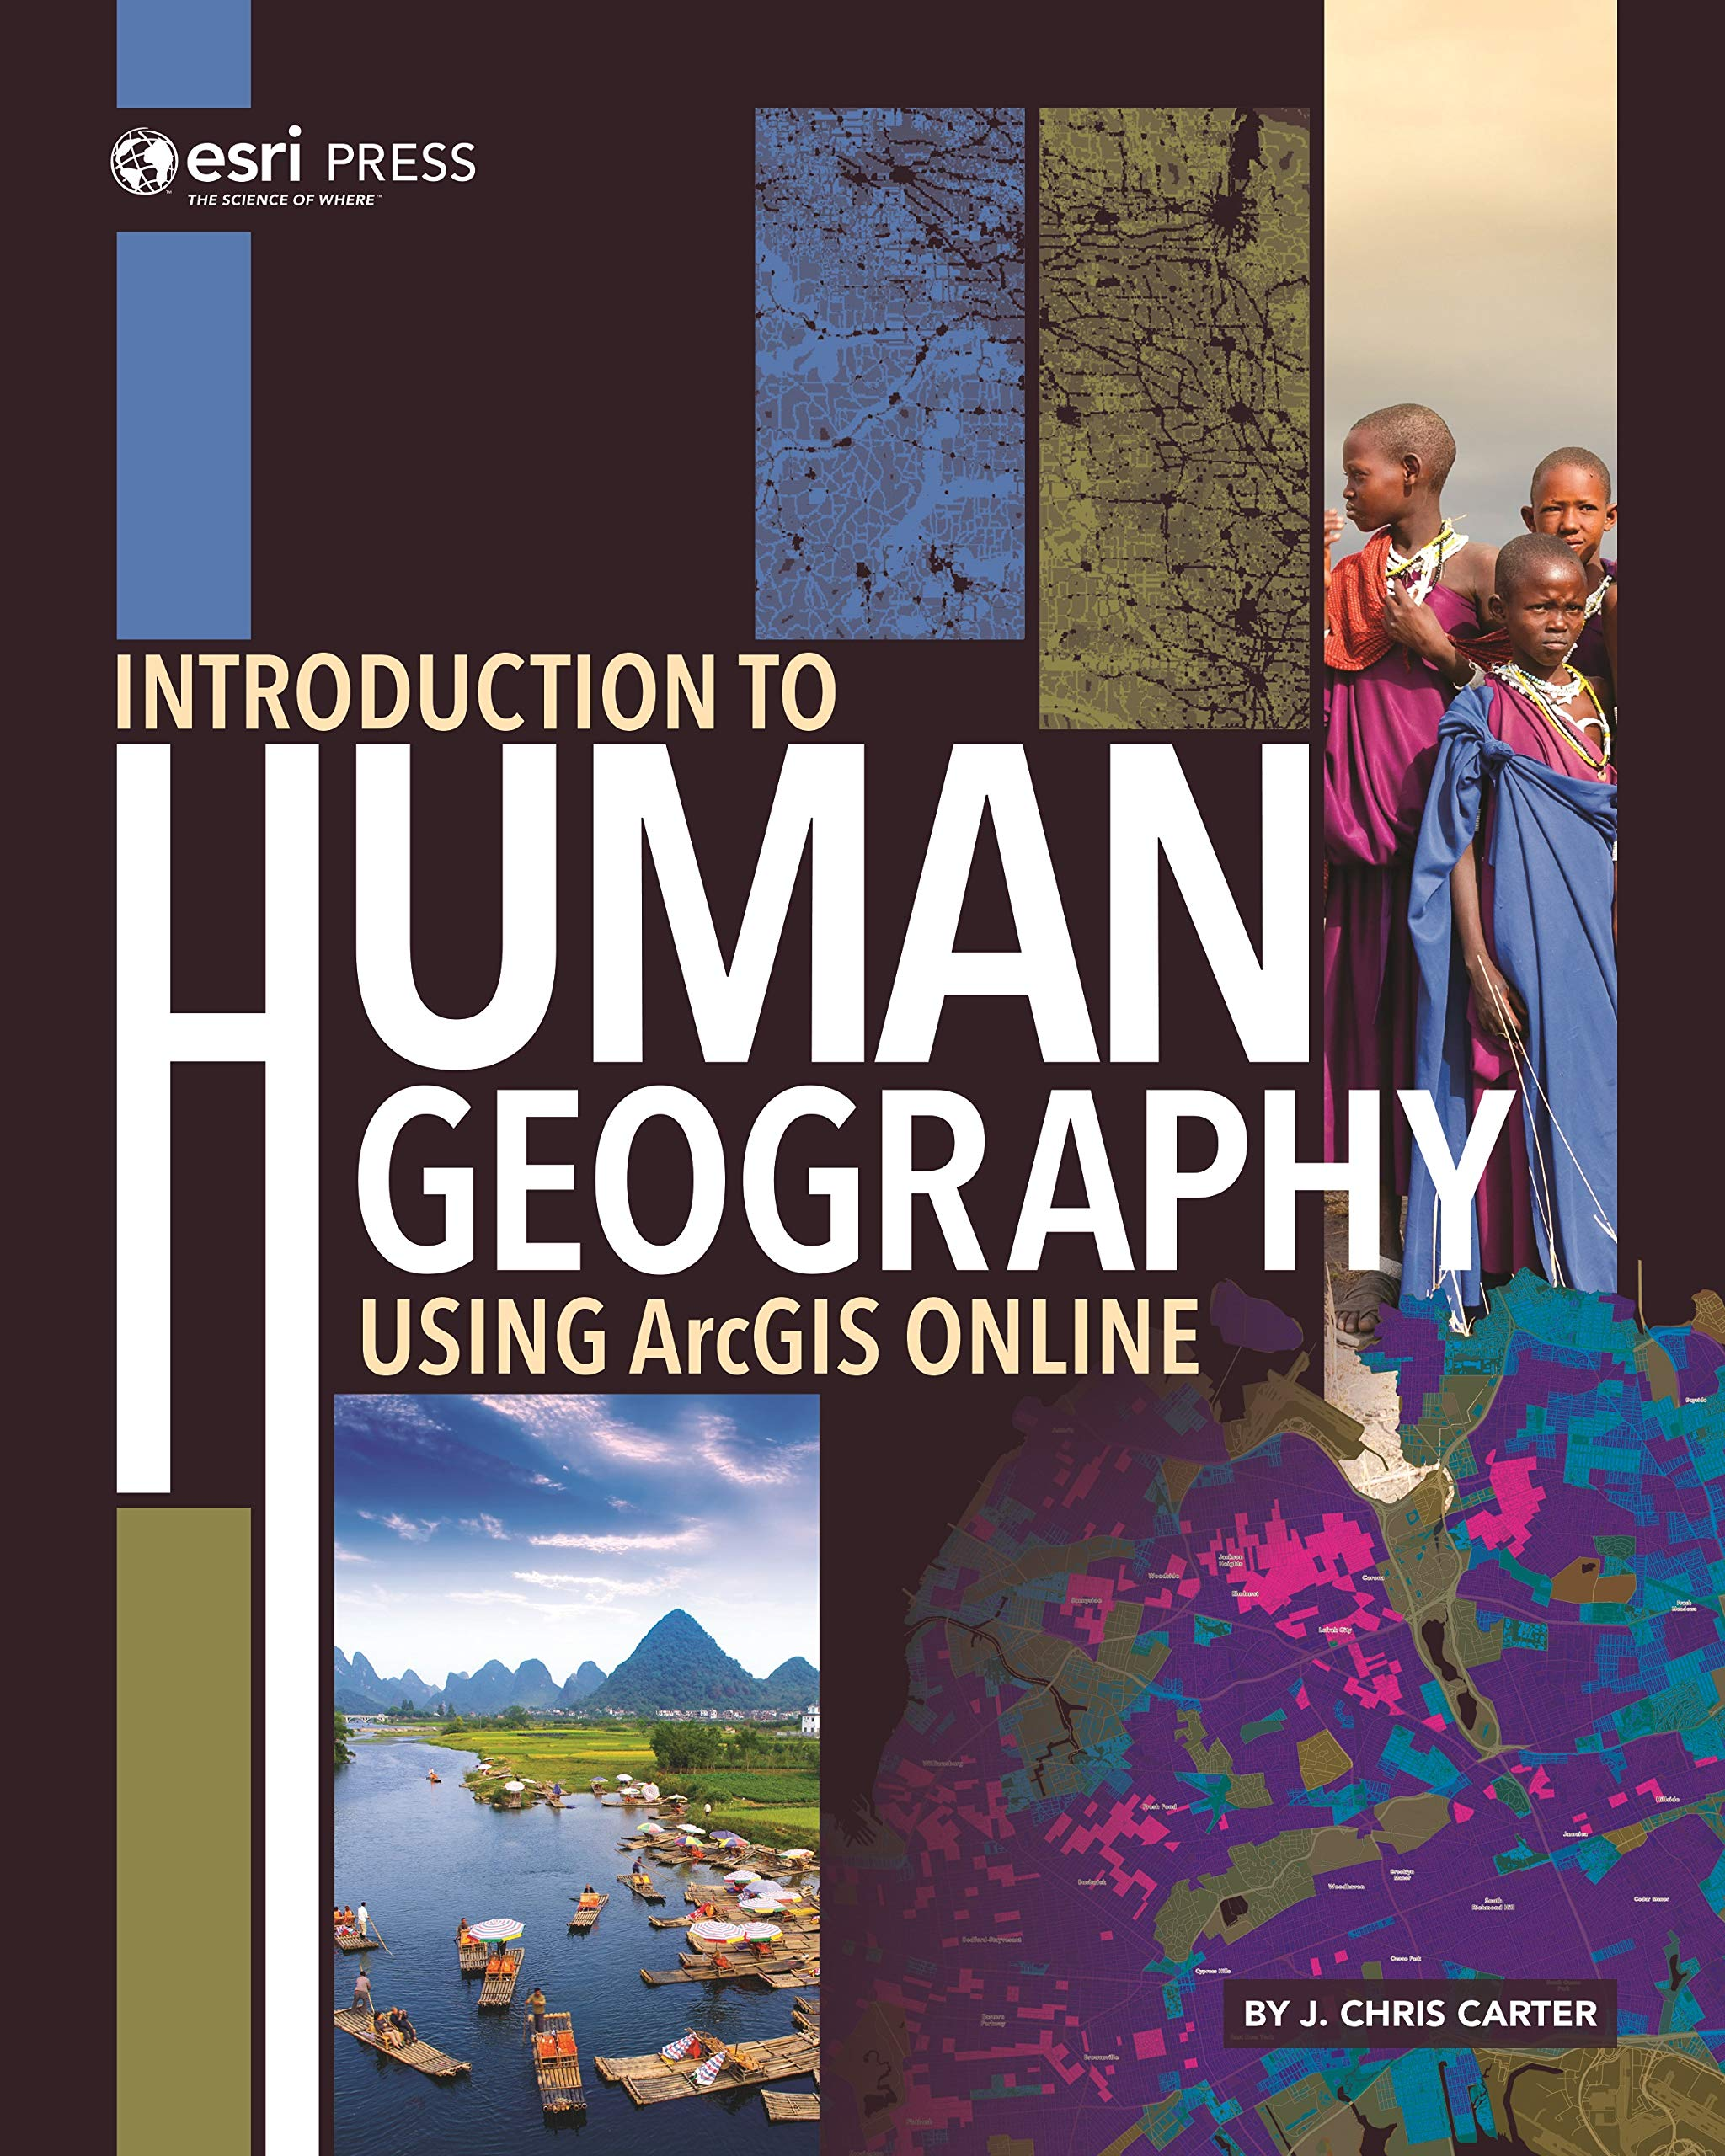 Introduction to Human Geography Using ArcGIS Online: J